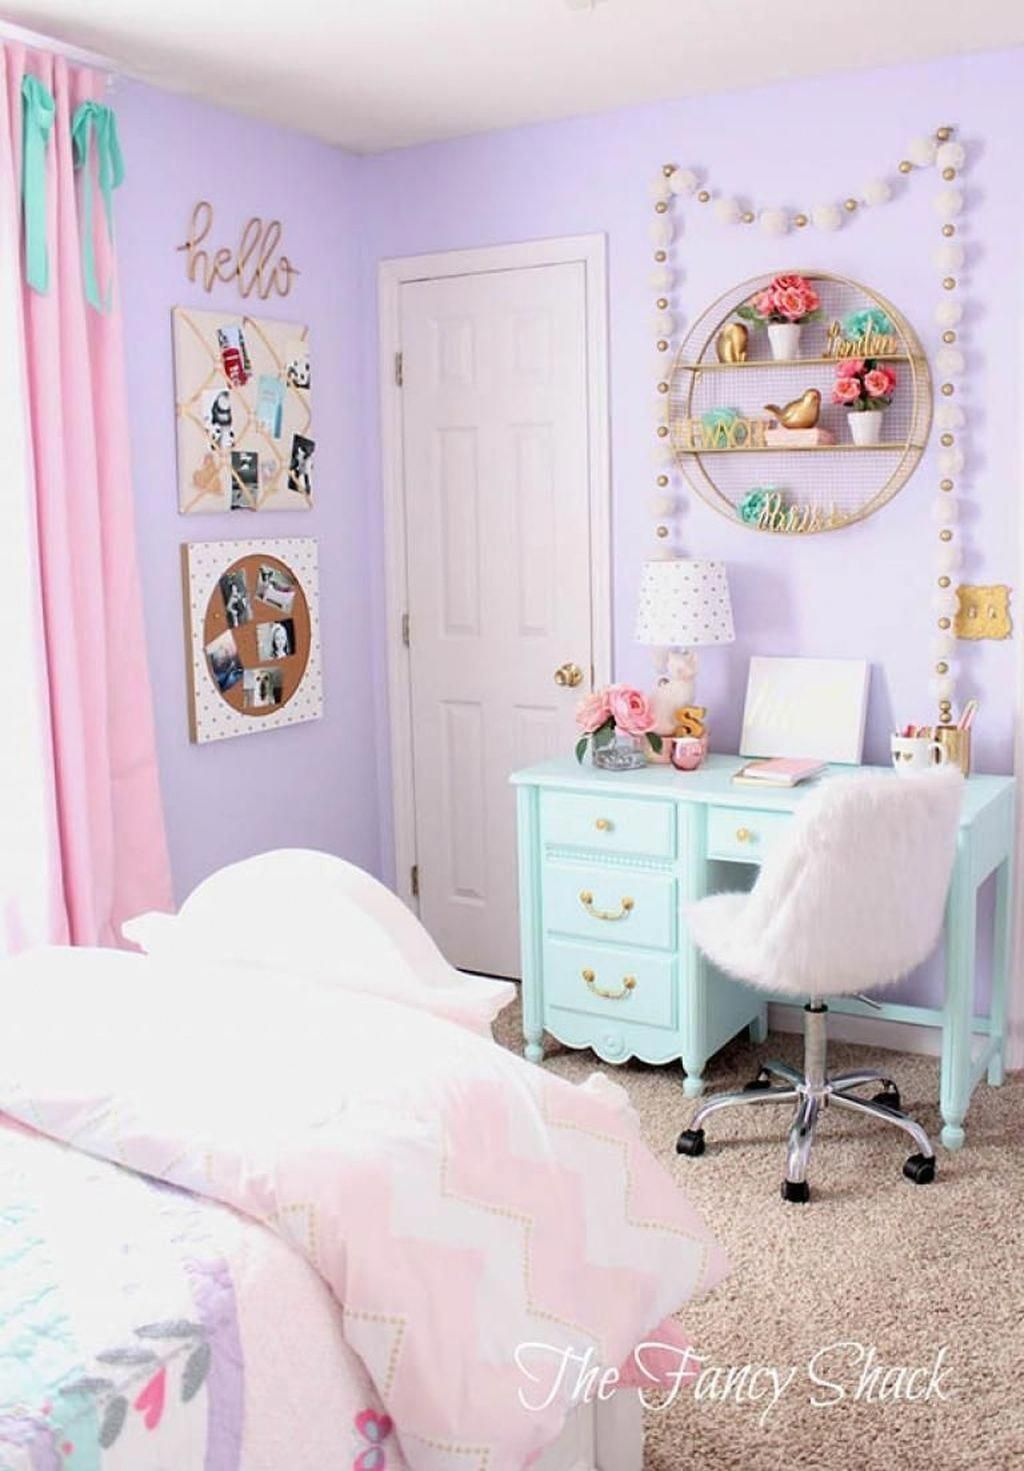 simple room ideas for decorating a room with few features on cute bedroom decor ideas for teen romantic bedroom decorating with light and color id=45384